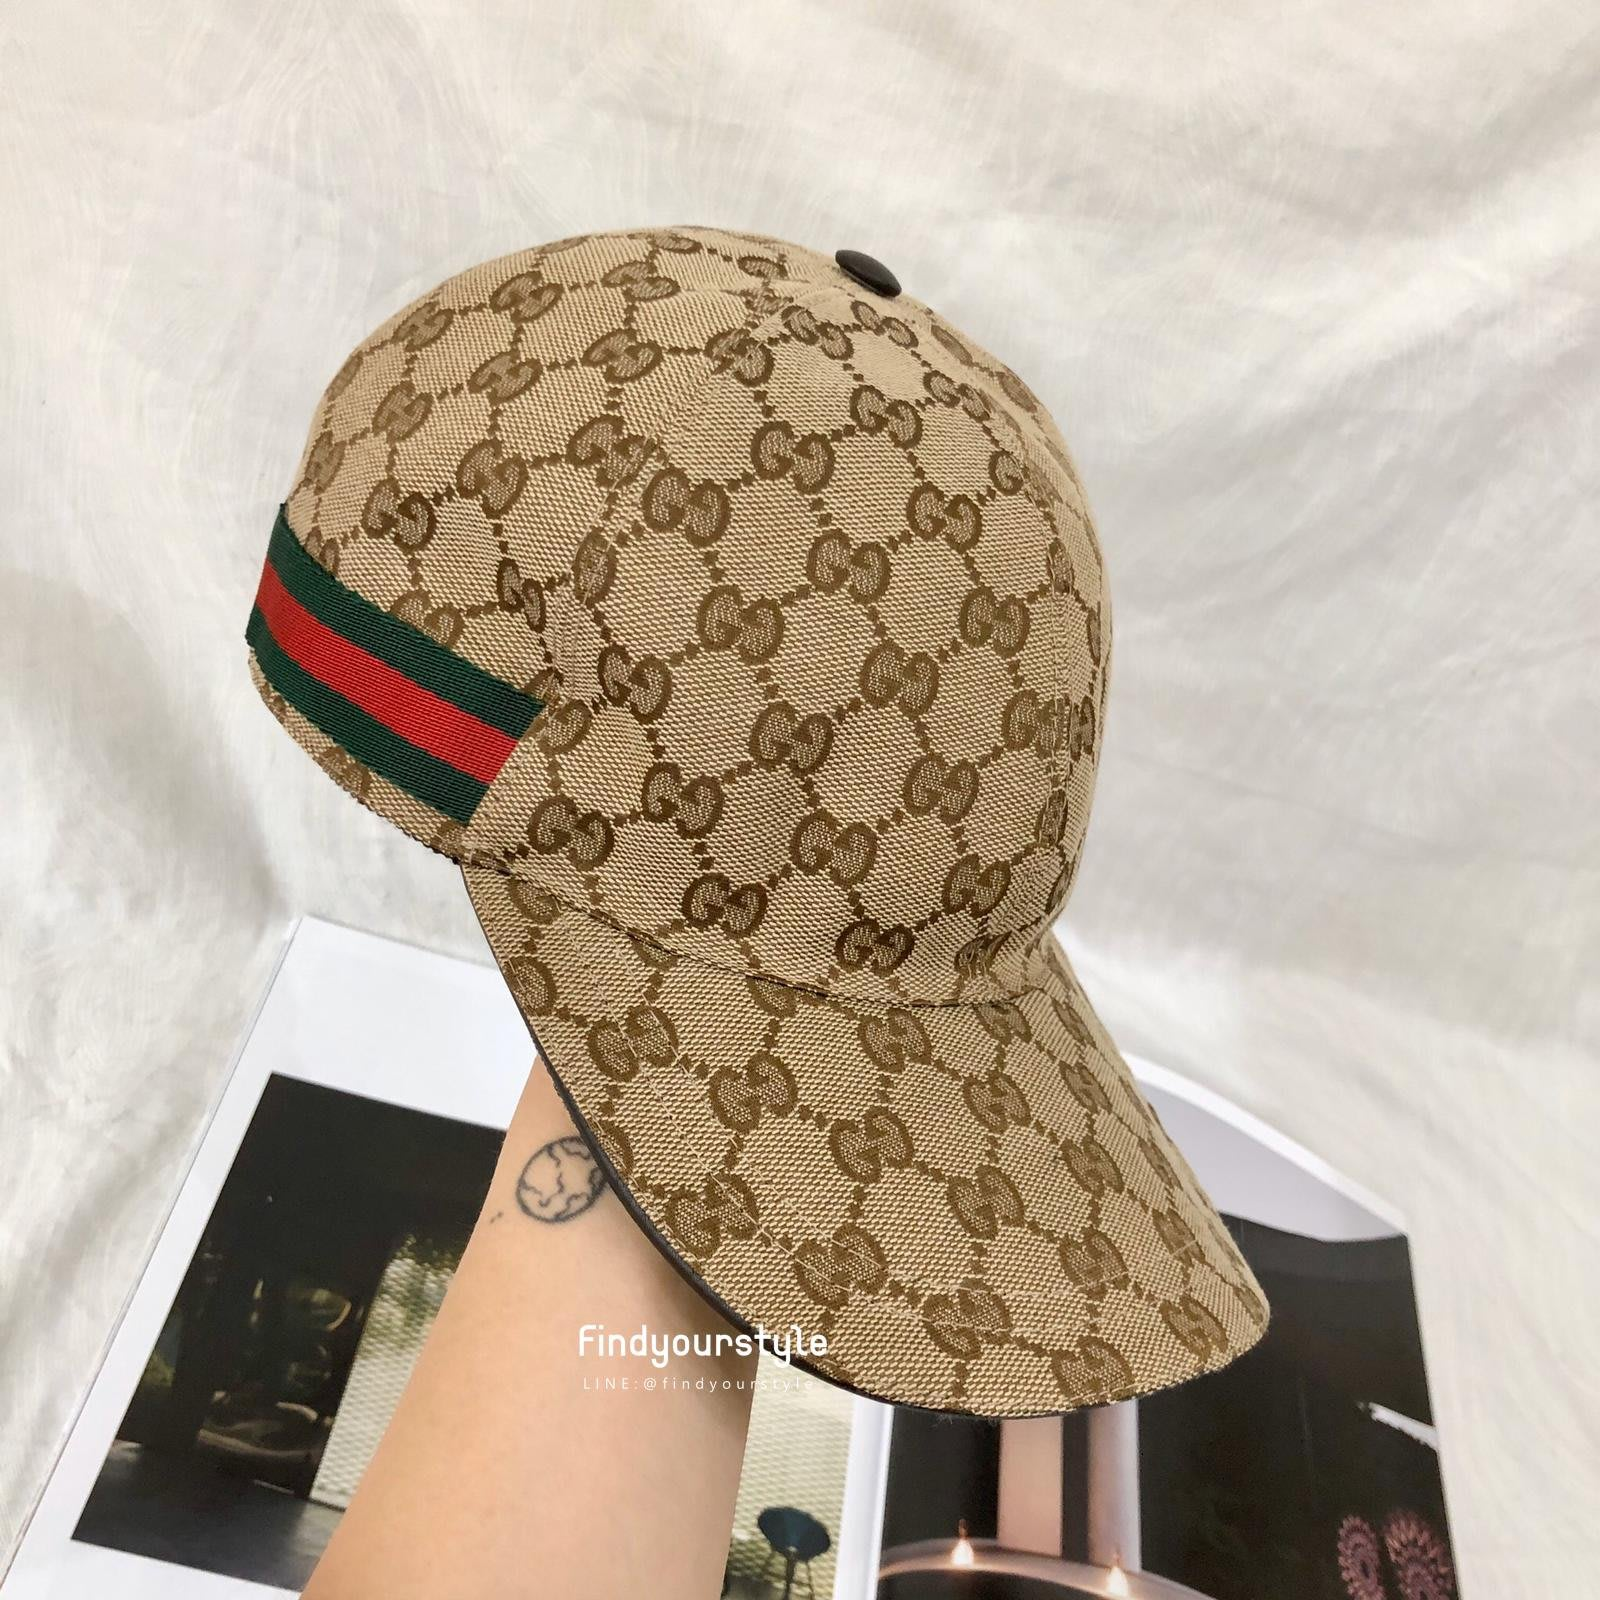 Findyourstyle正品代購Gucci老花棒球帽